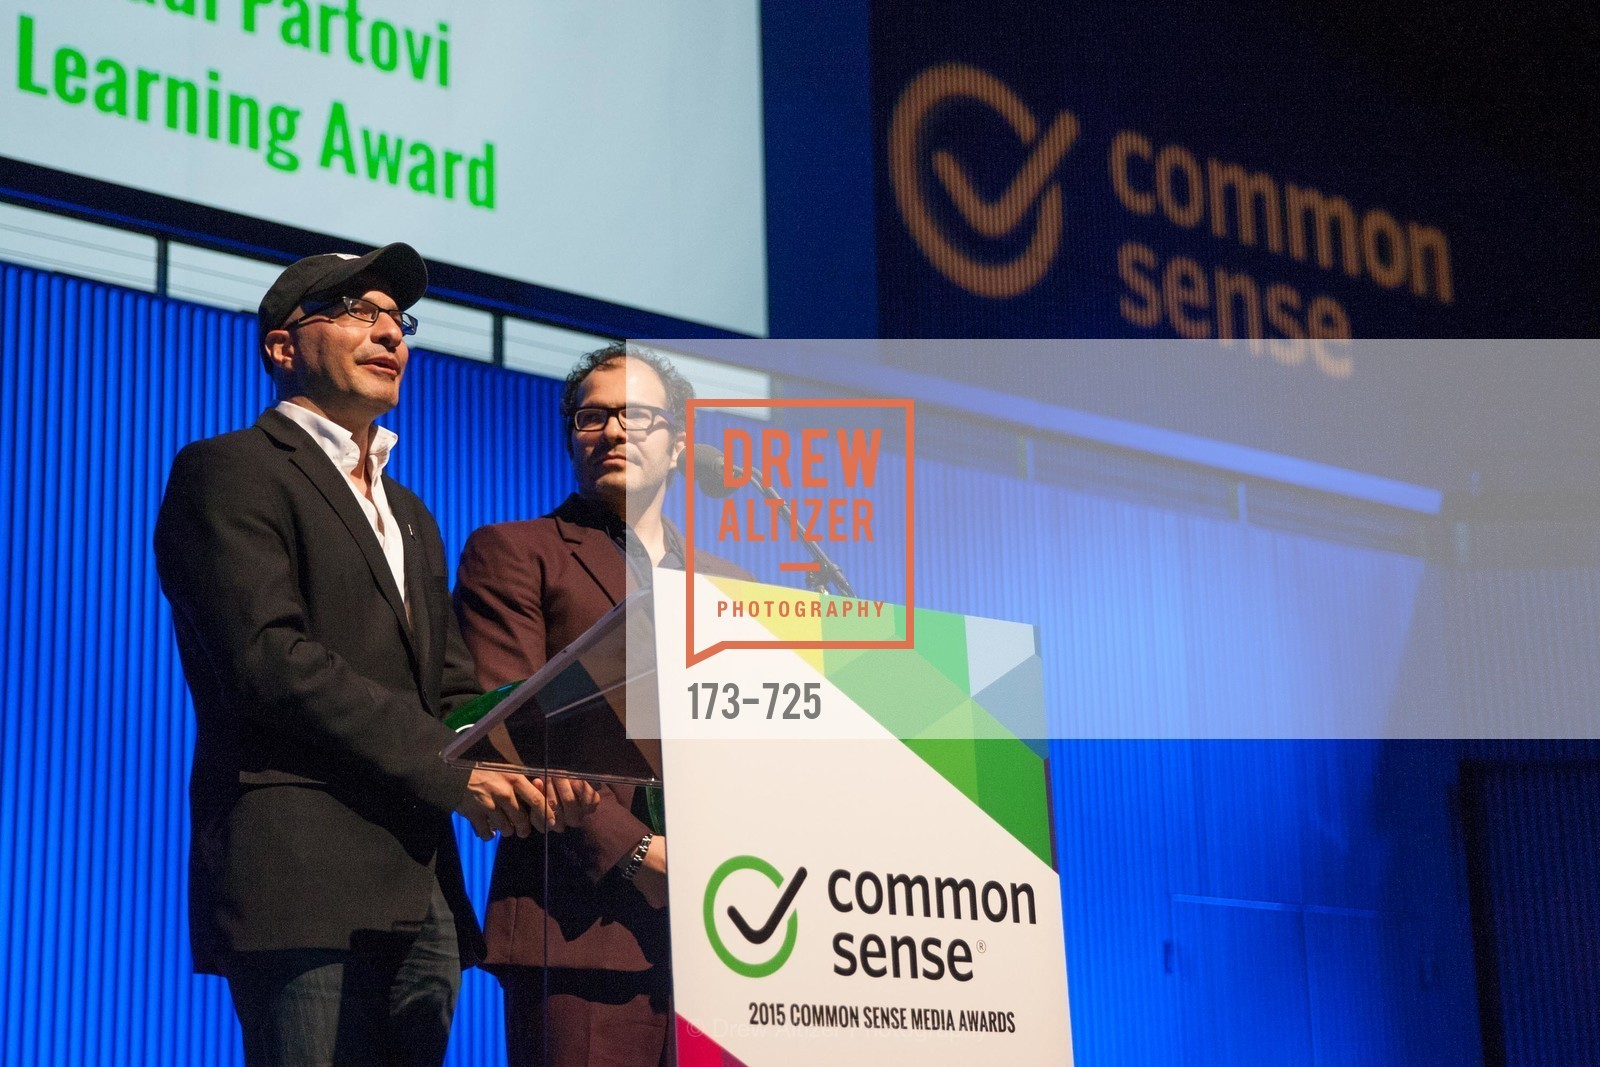 Hadi Partovi, Ali Partovi, COMMON SENSE Media Awards 2015, US, May 14th, 2015,Drew Altizer, Drew Altizer Photography, full-service agency, private events, San Francisco photographer, photographer california